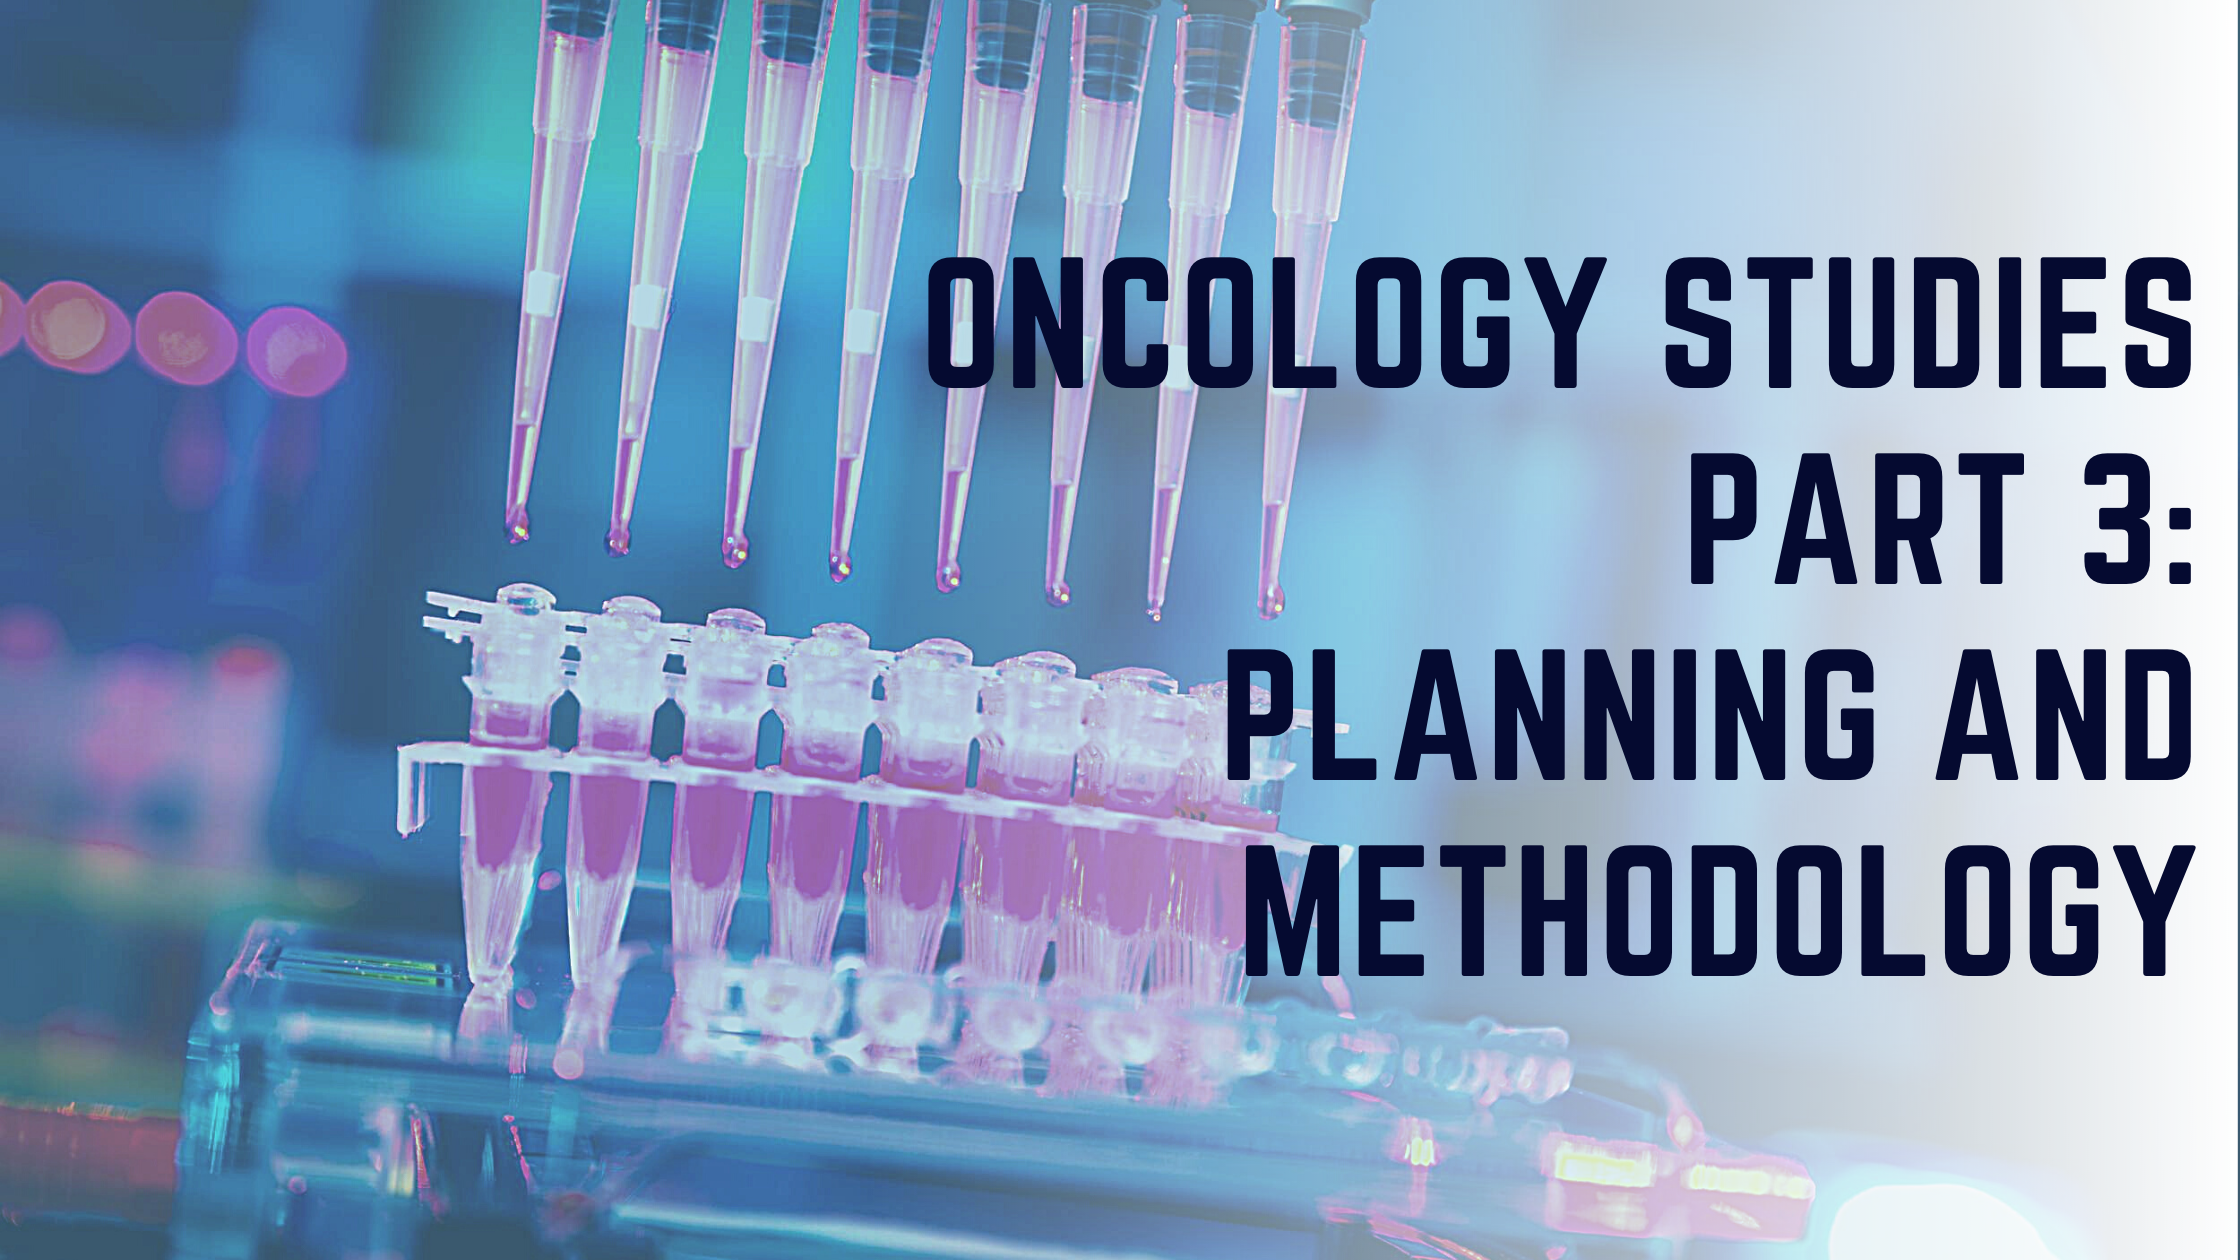 Oncology Quality Studies: Planning and Methodology (Part 3)